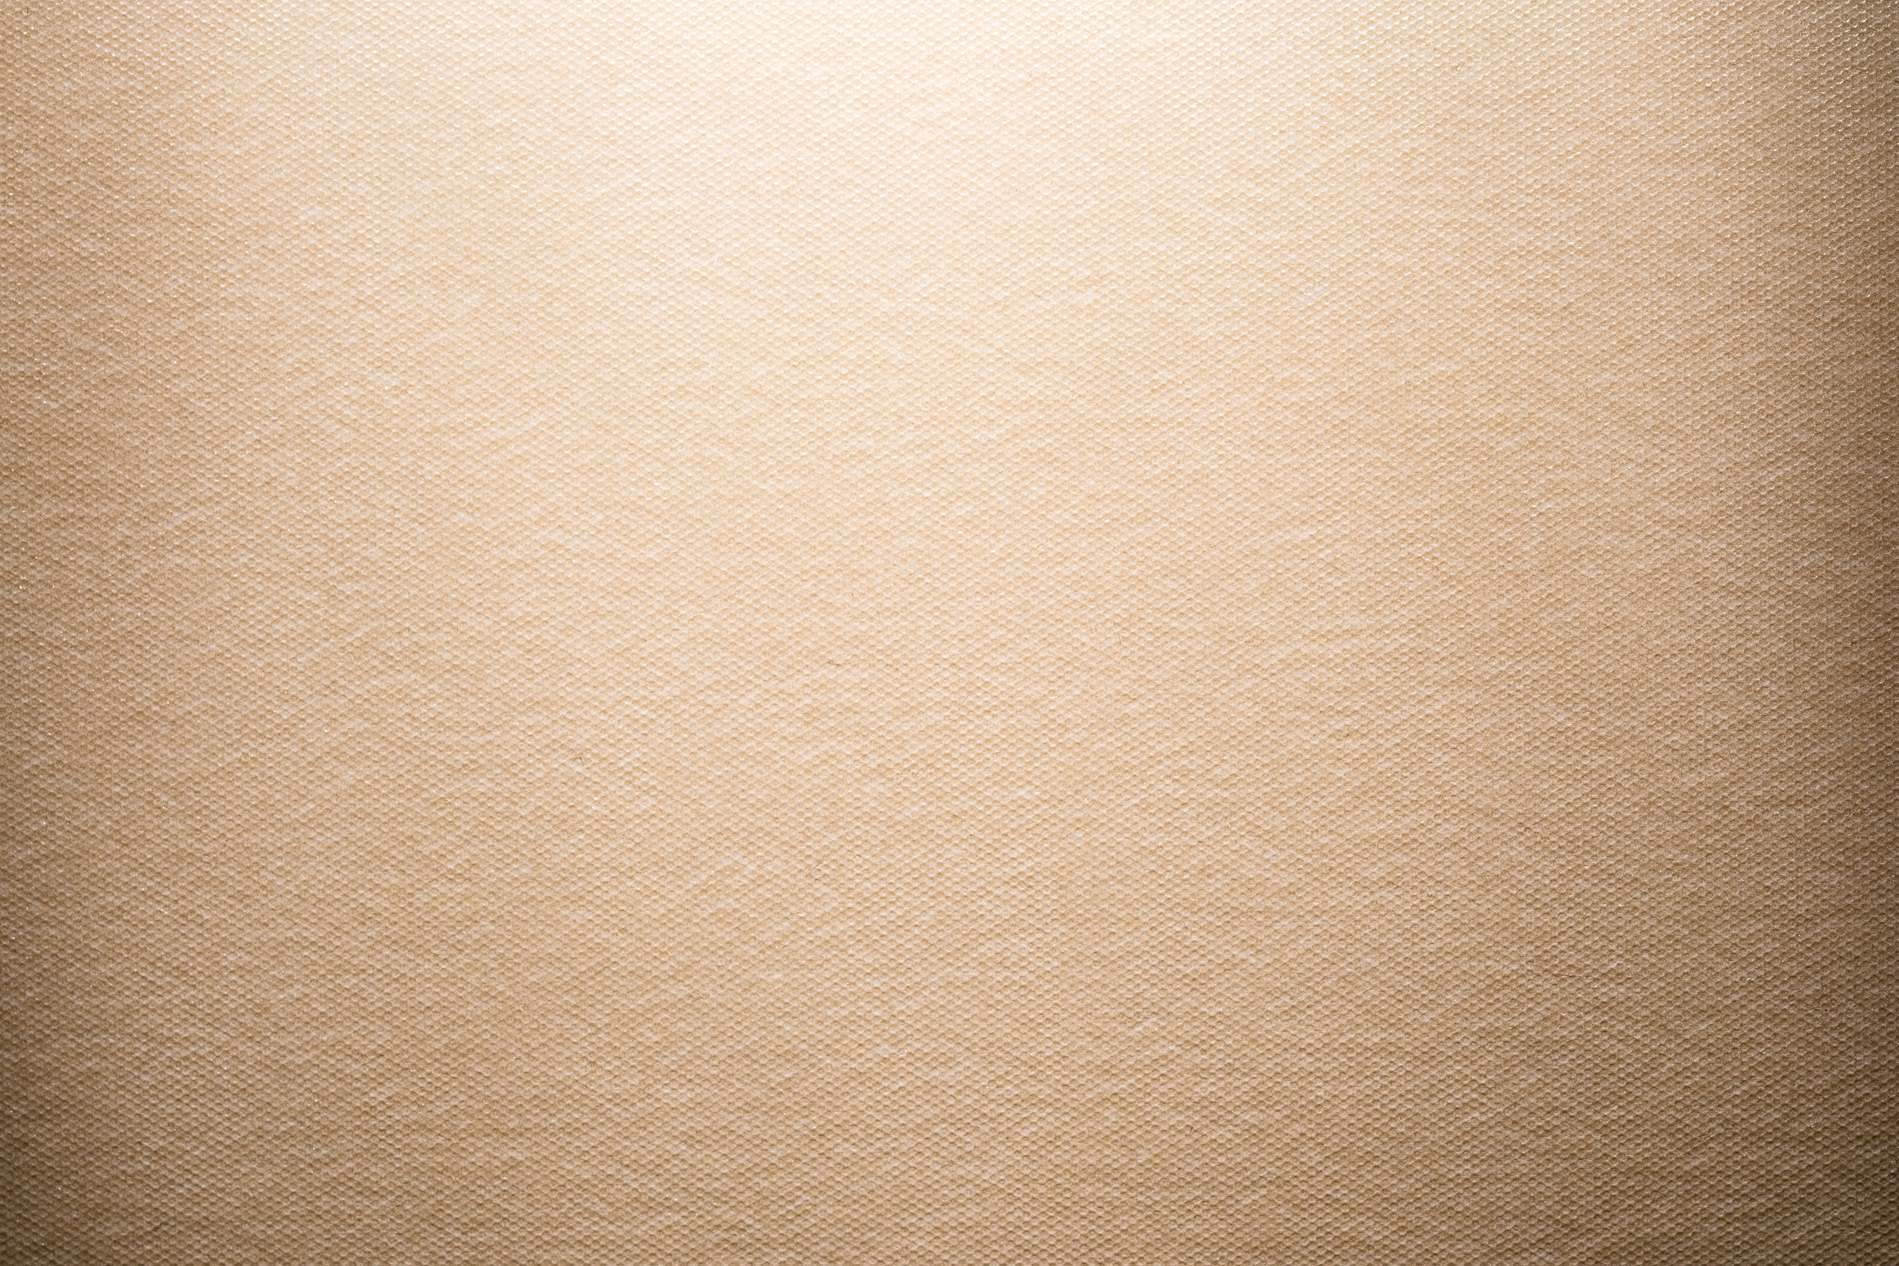 clean bisque textured paper background photohdx